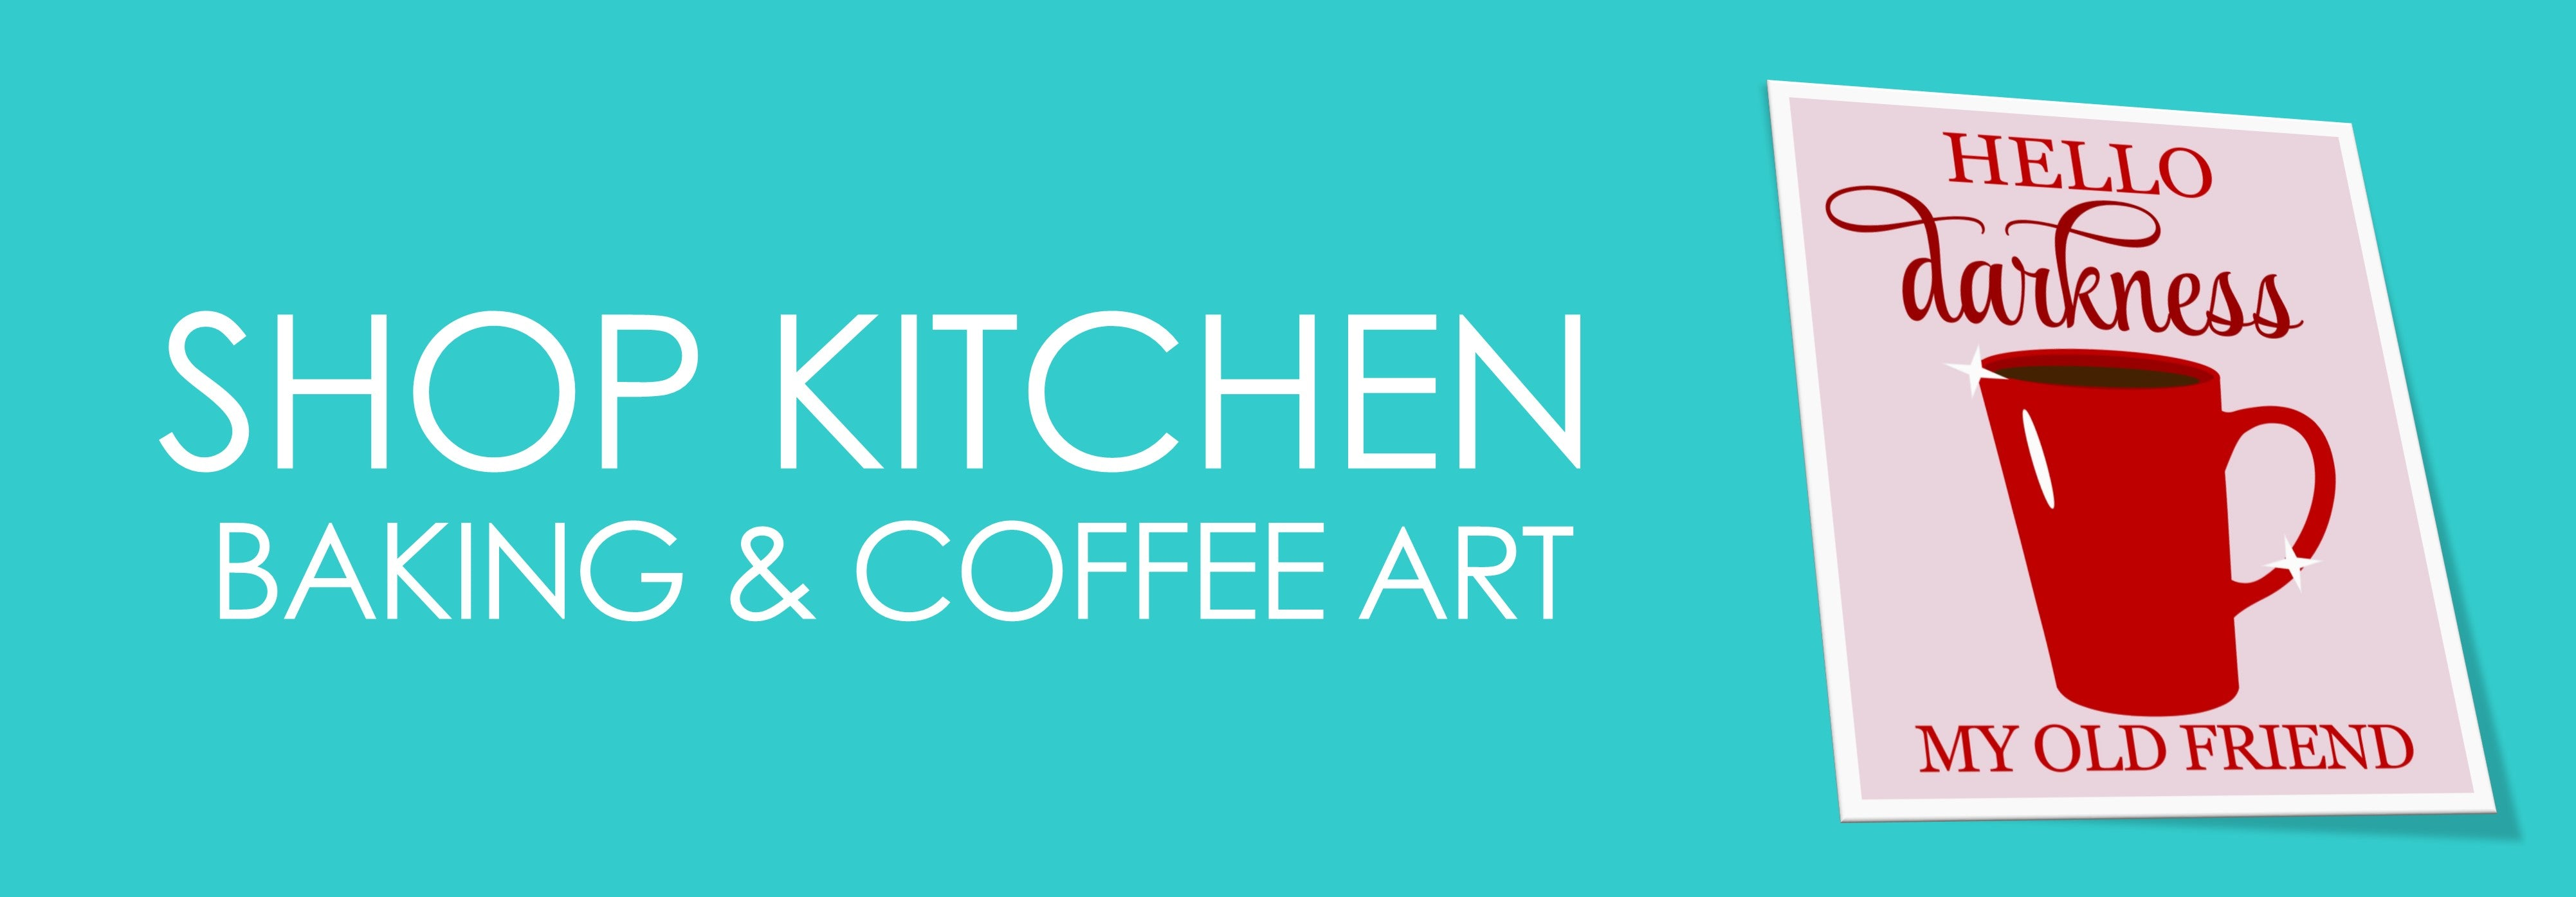 Shop Kitchen Baking & Coffee Art